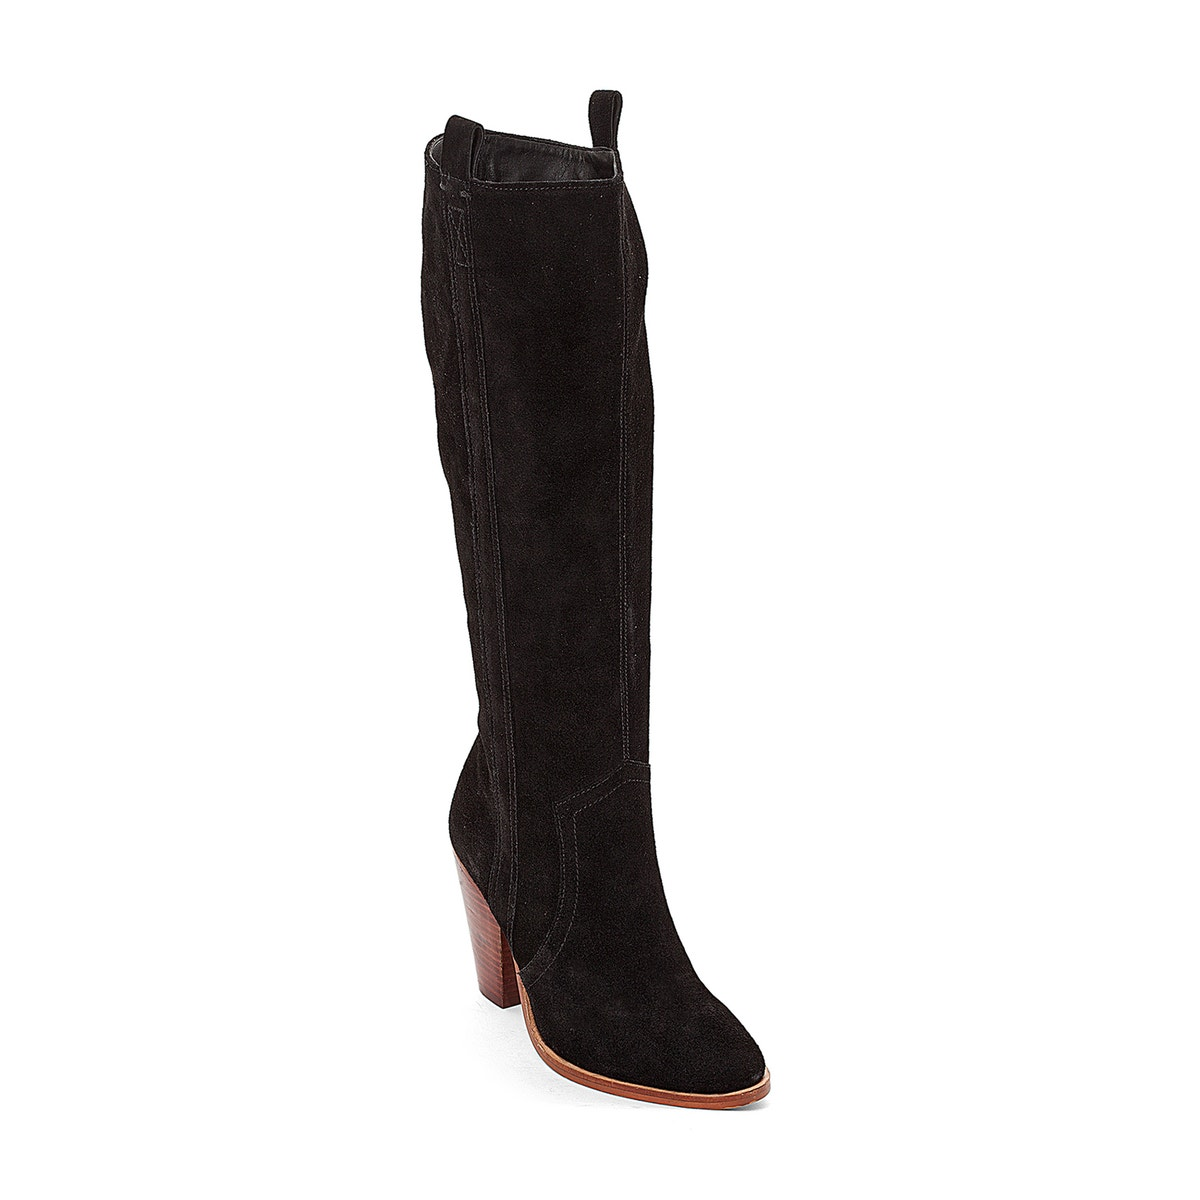 785585aa817 La-Redoute-Collections-Womens-Leather-High-Heeled-Boots thumbnail